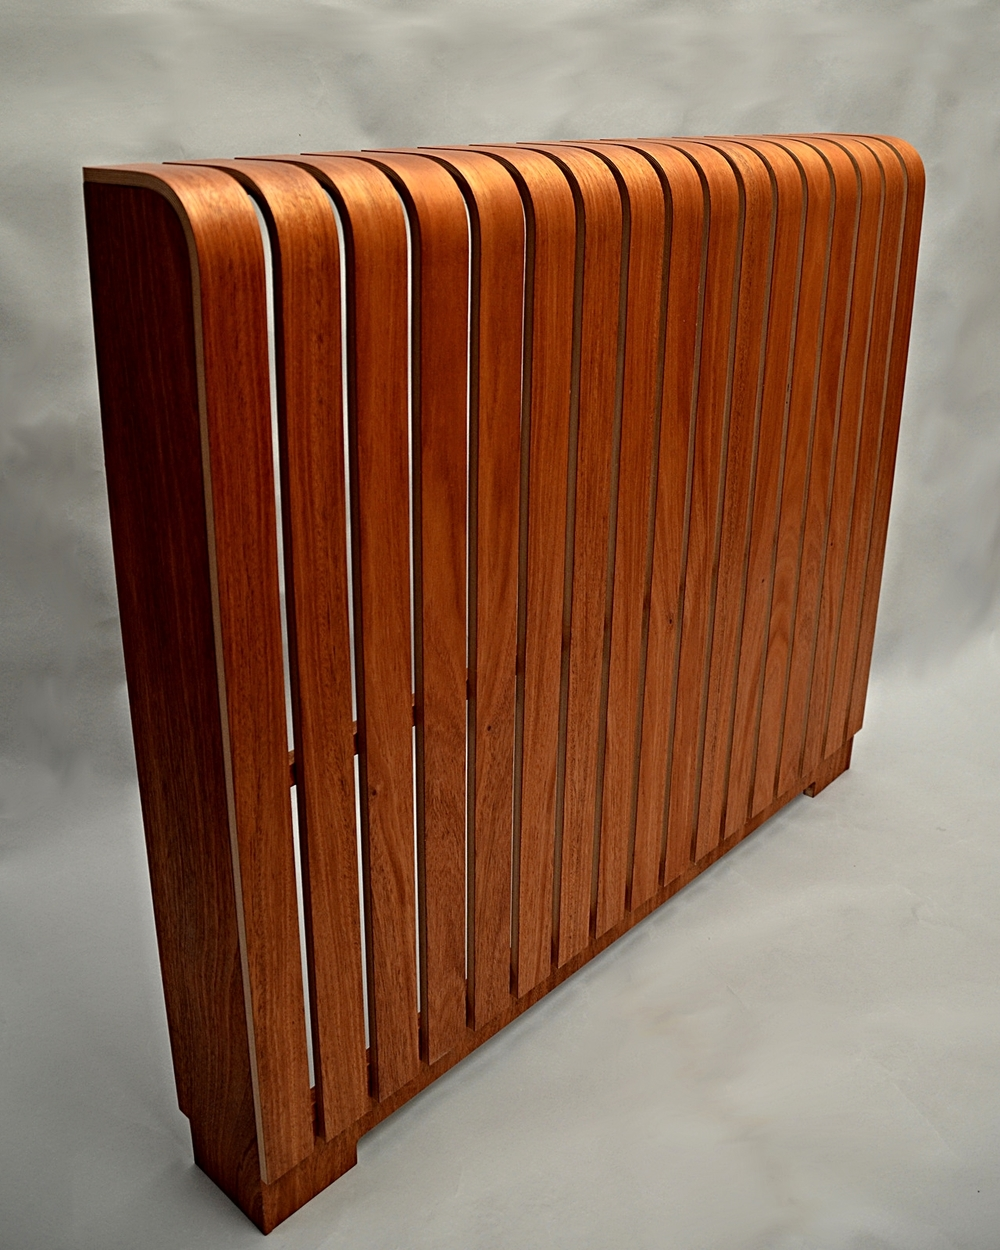 Sapele floorstanding with plinth